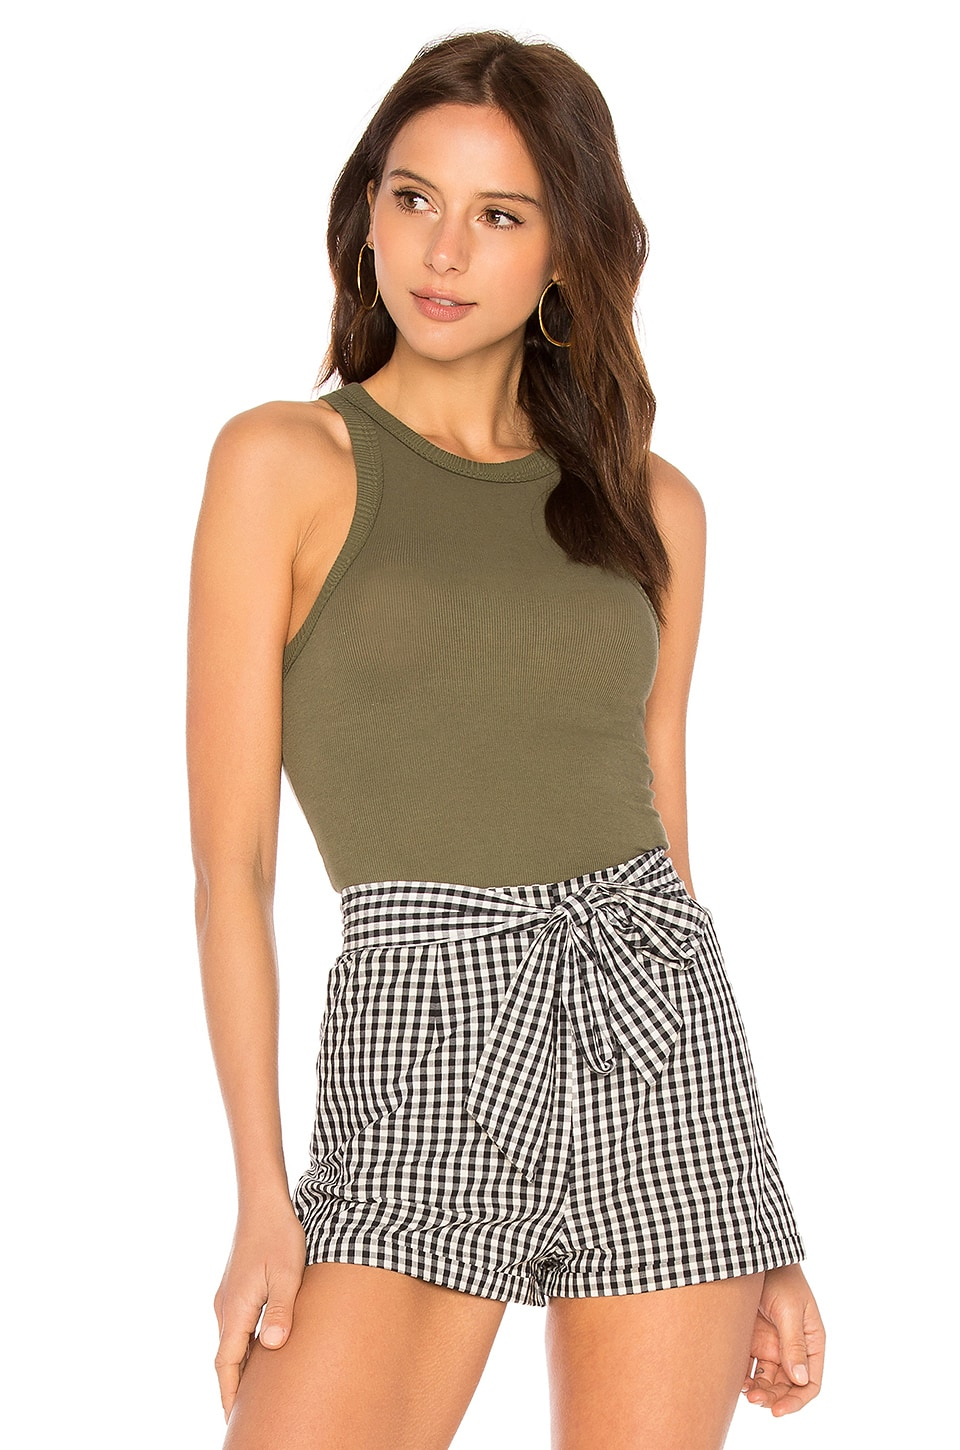 Wide Eyed Tank                   Free People                                                                                                                                                     Sale price:                                                                        CA$ 15.69                                                                                                  Previous price:                                                                       CA$ 26.15 2